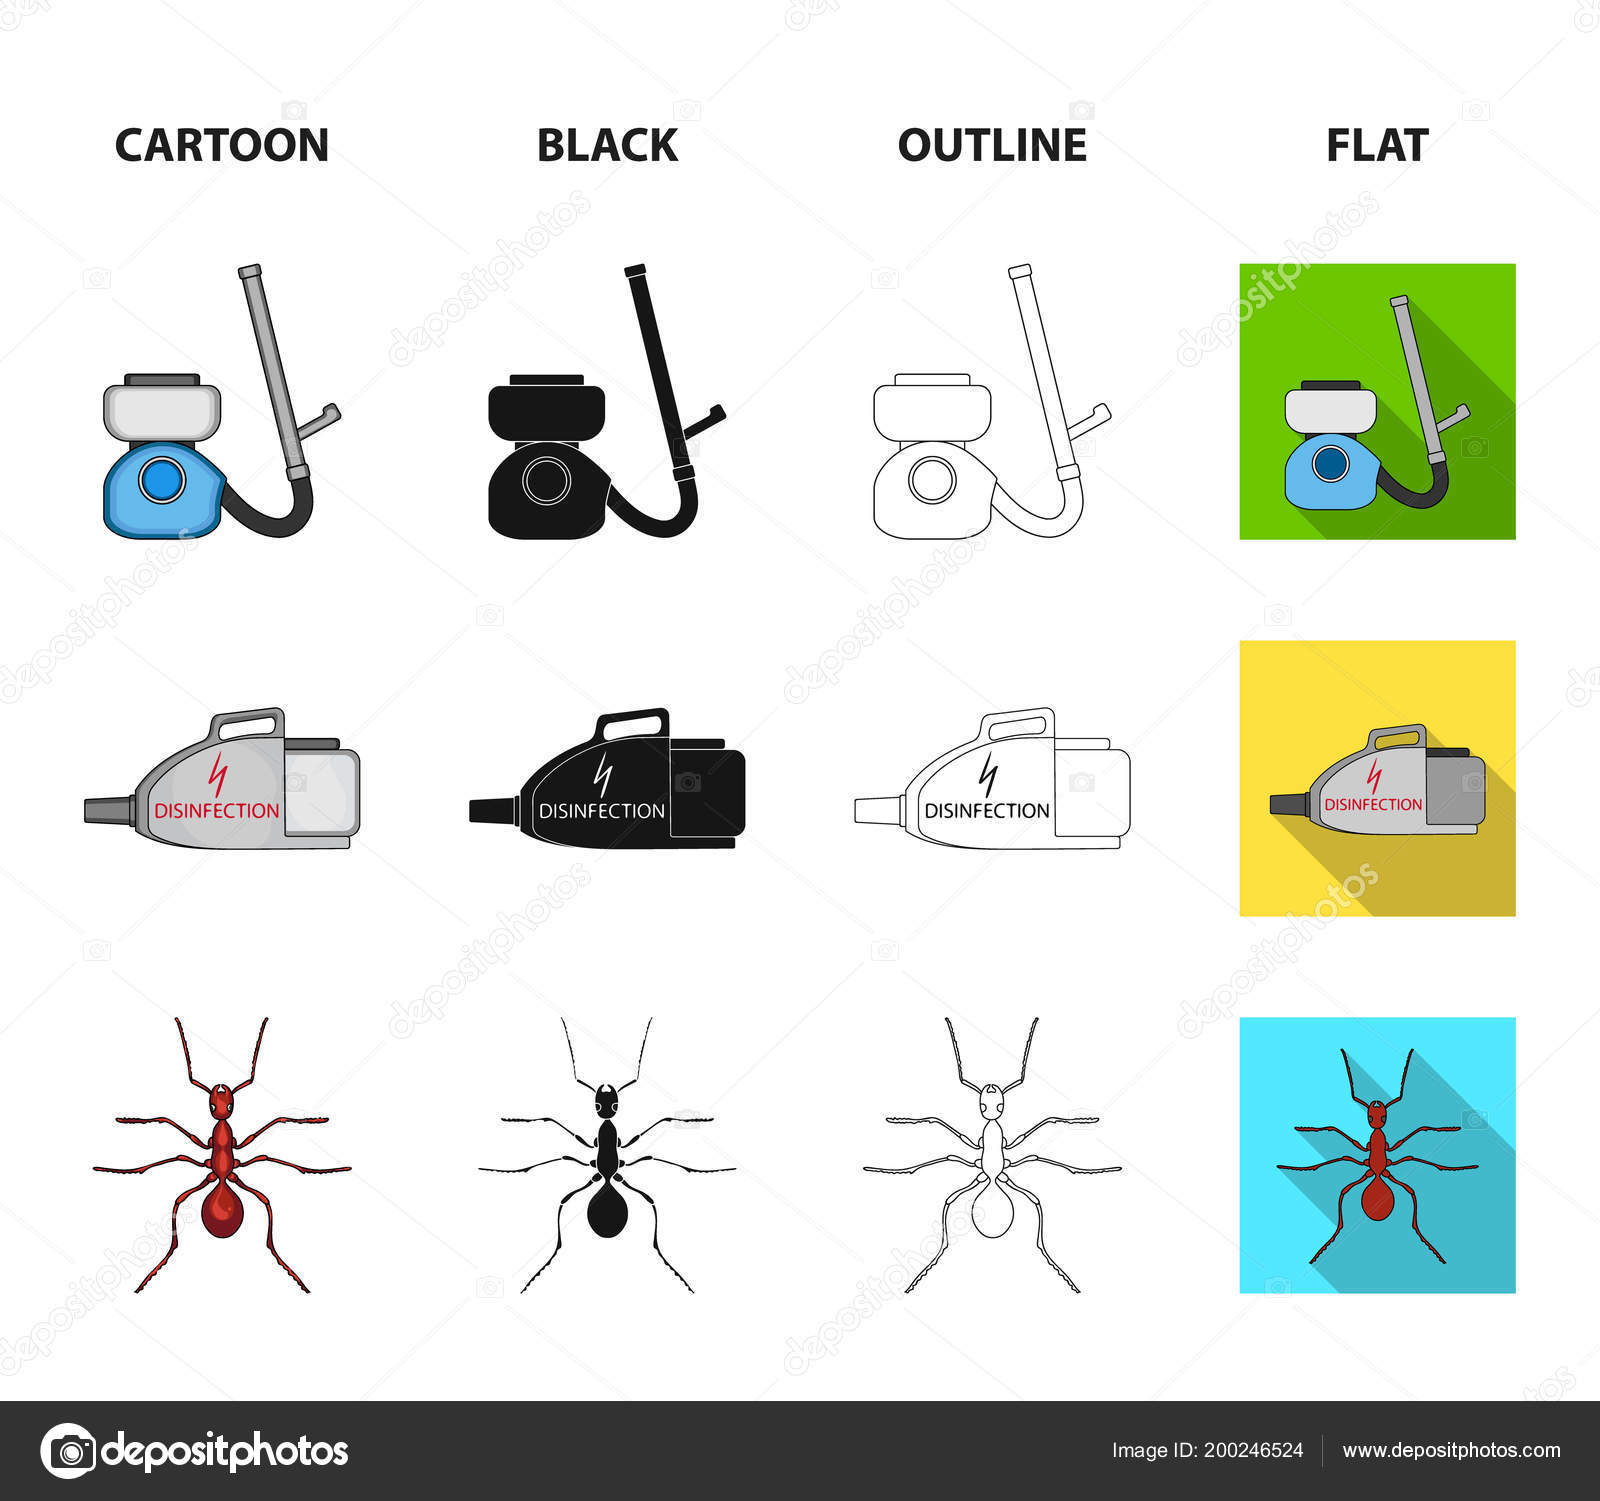 hight resolution of cockroach and equipment for disinfection cartoon black outline flat icons in set collection for design pest control service vector symbol stock